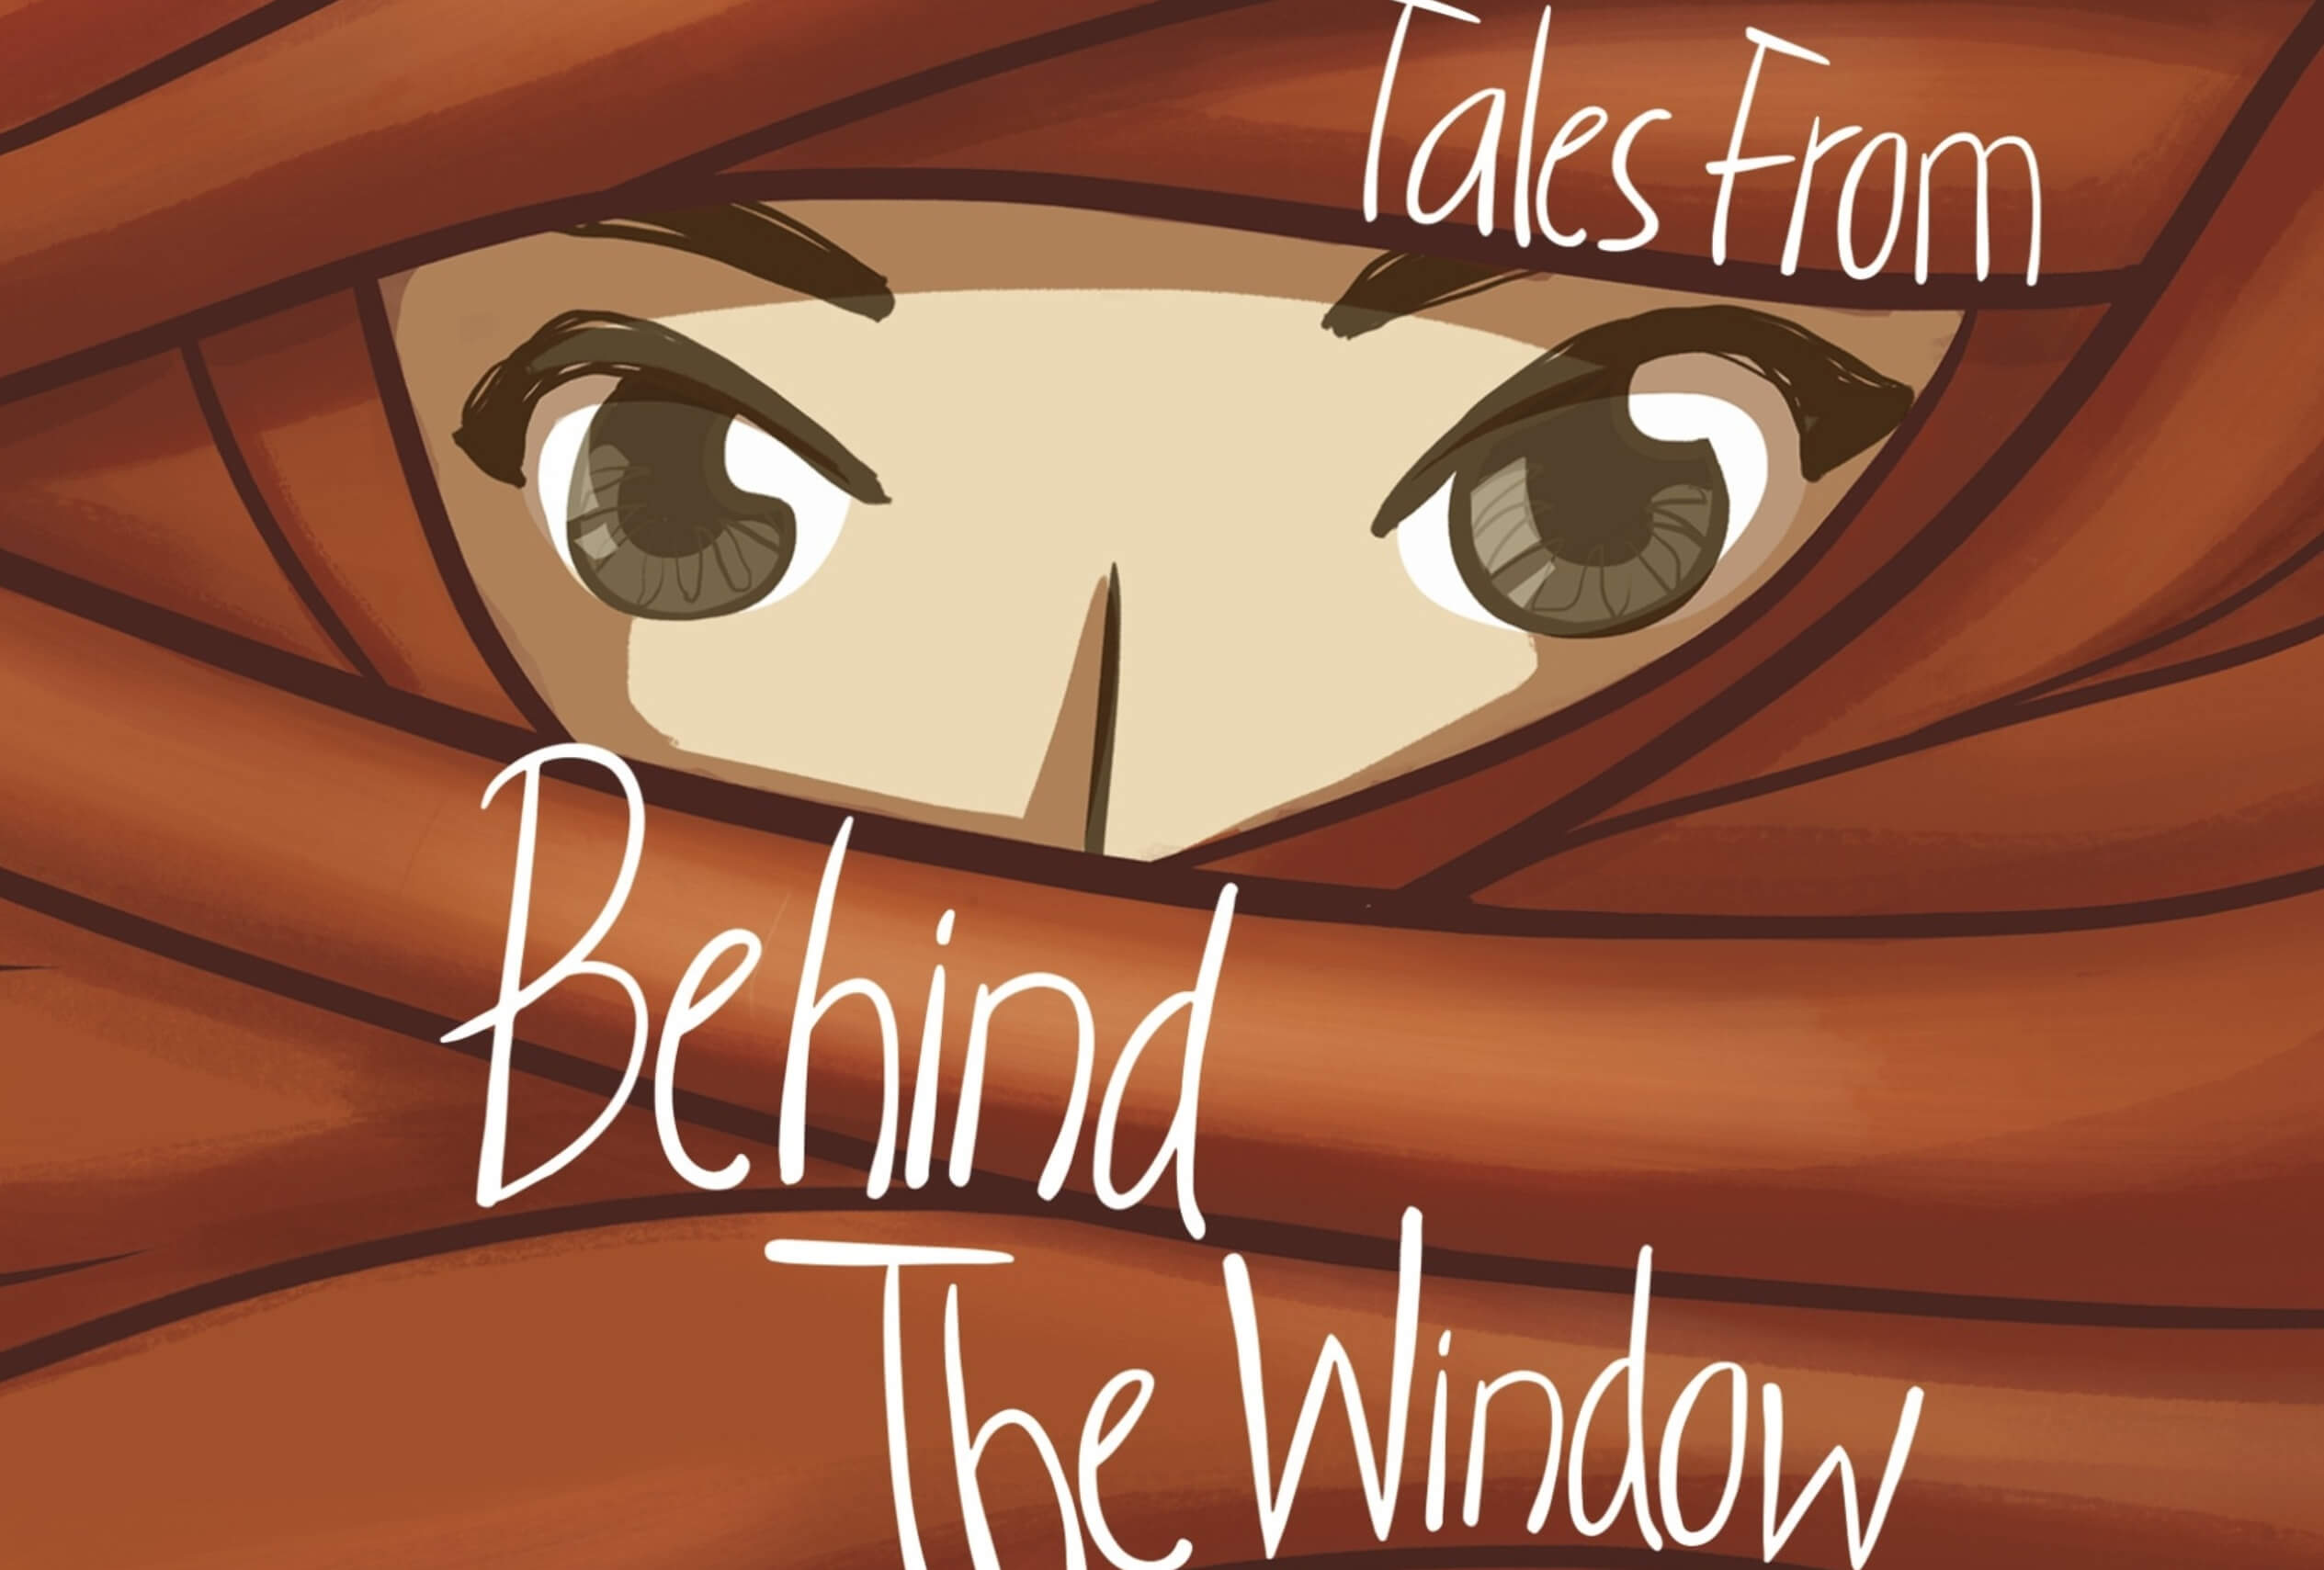 Tales From Behind the Window Cover. Europe Comics. August 2019.